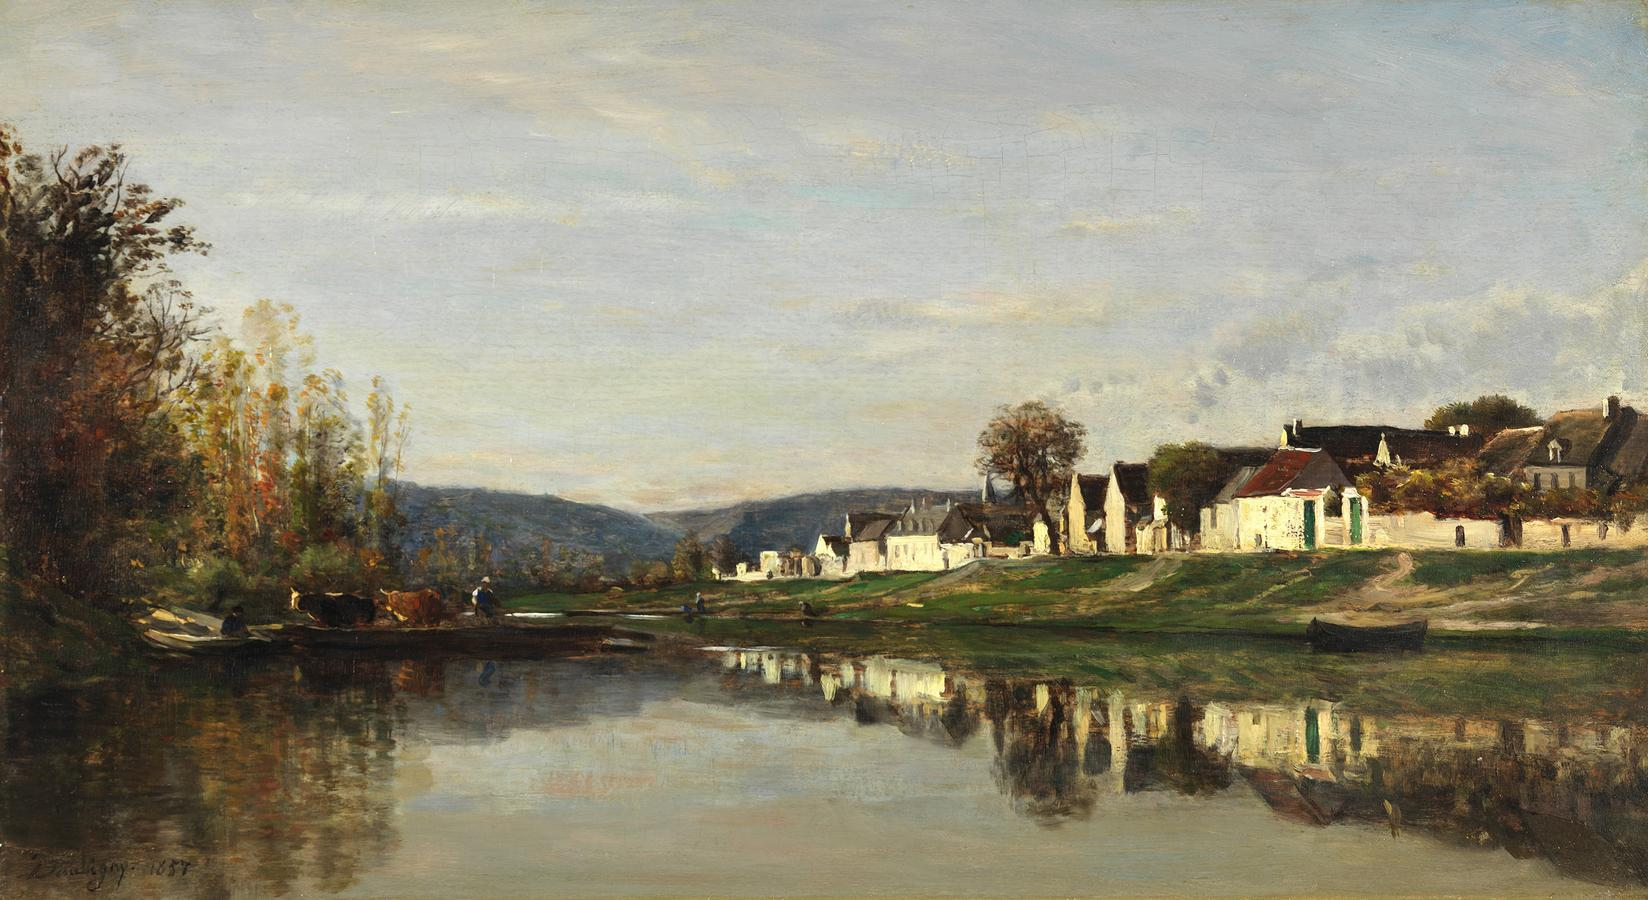 daubigny-village-of-gloton-1857-san-franciscoh.jpg